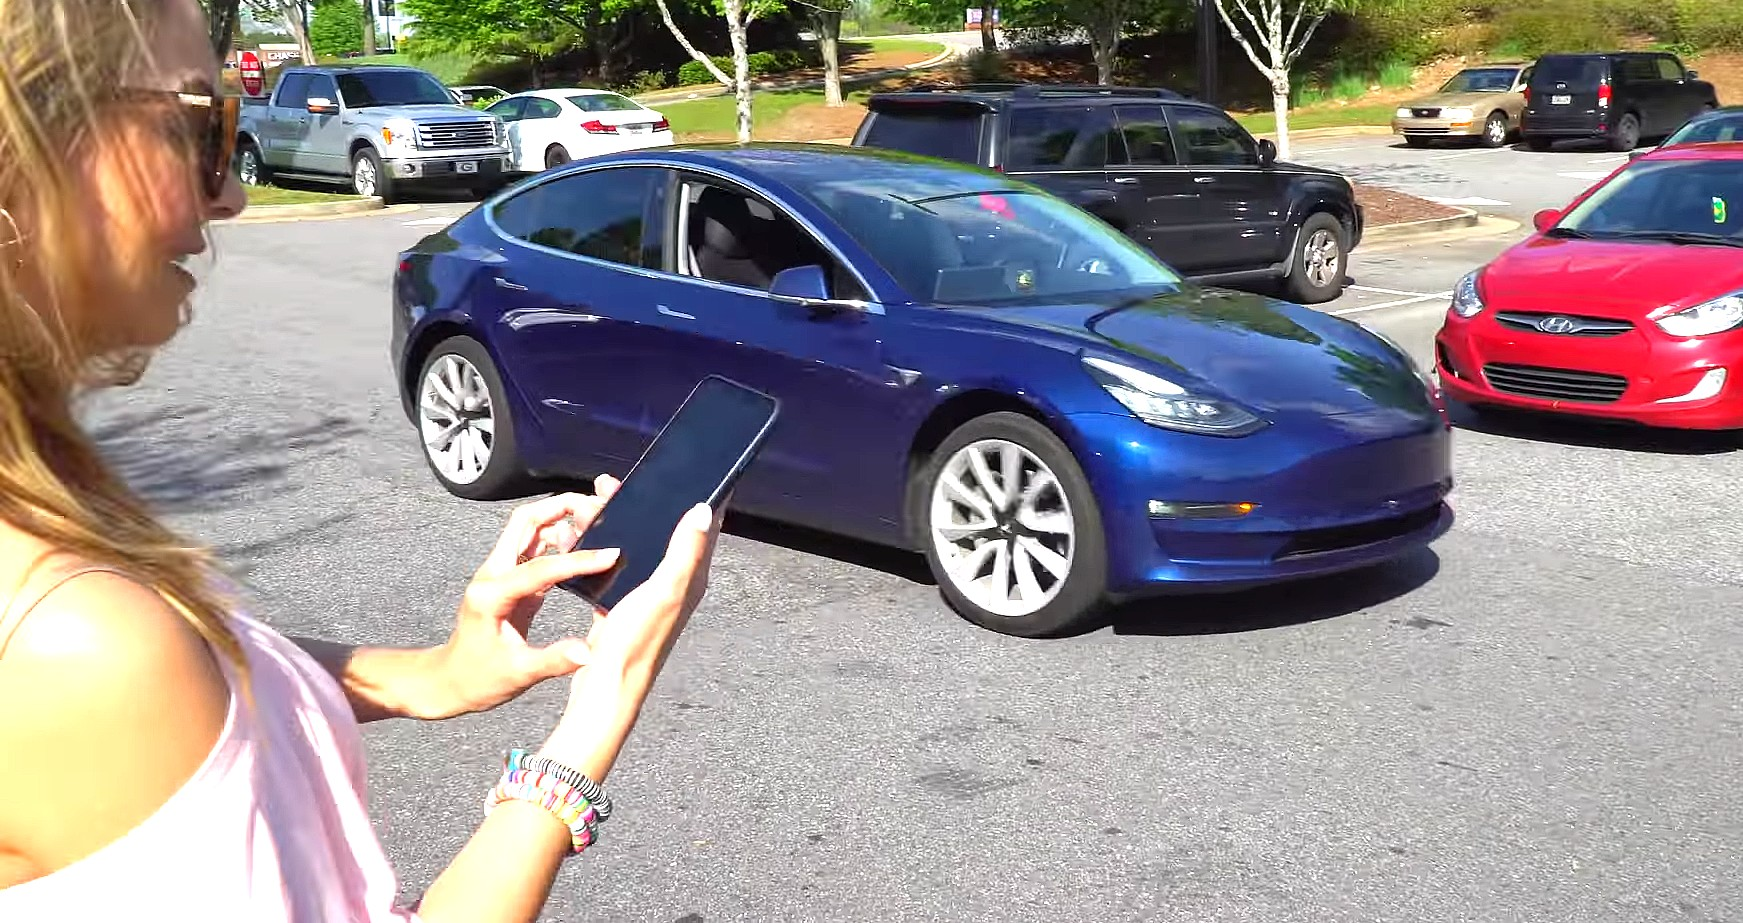 Tesla's Advanced Summon update is almost ready for release, says Elon Musk